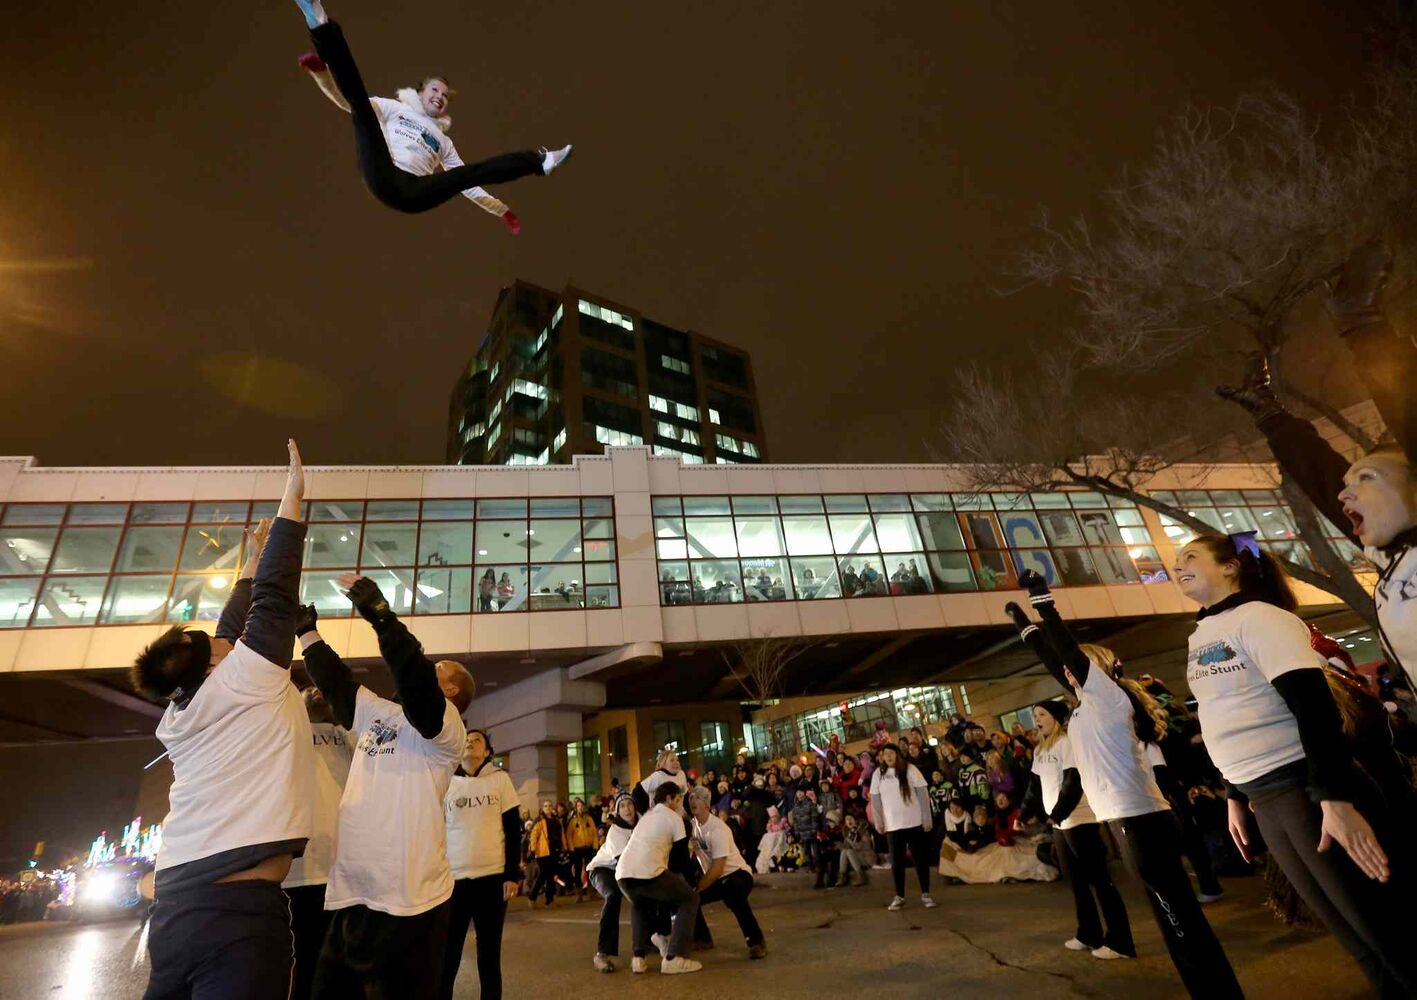 A cheerleading squad shows off their stuff. (TREVOR HAGAN / WINNIPEG FREE PRESS)